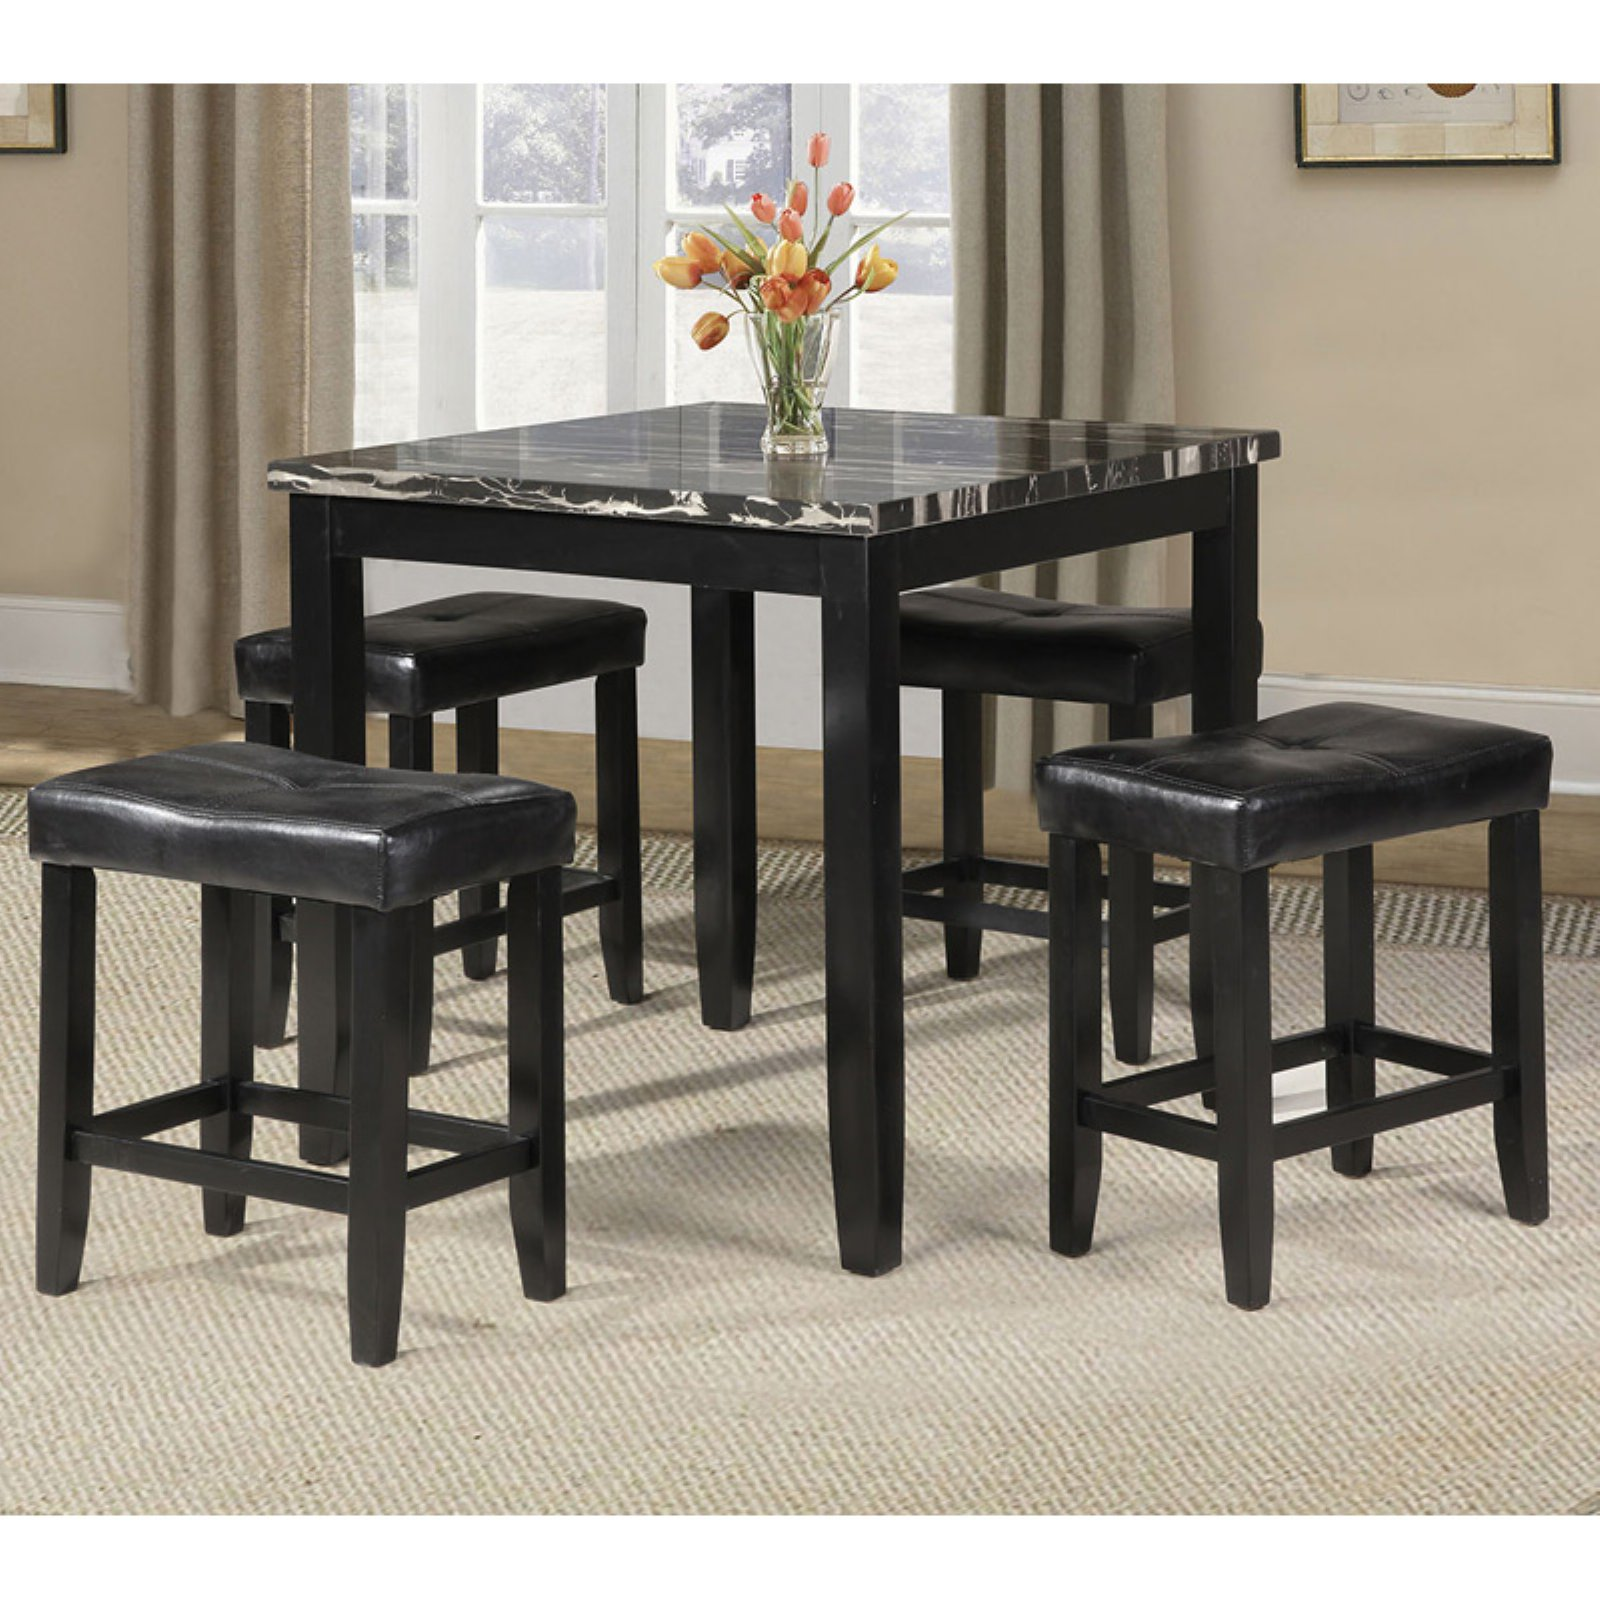 Acme Blythe 5 Piece Counter Height Dining Set, Faux Marble And Black